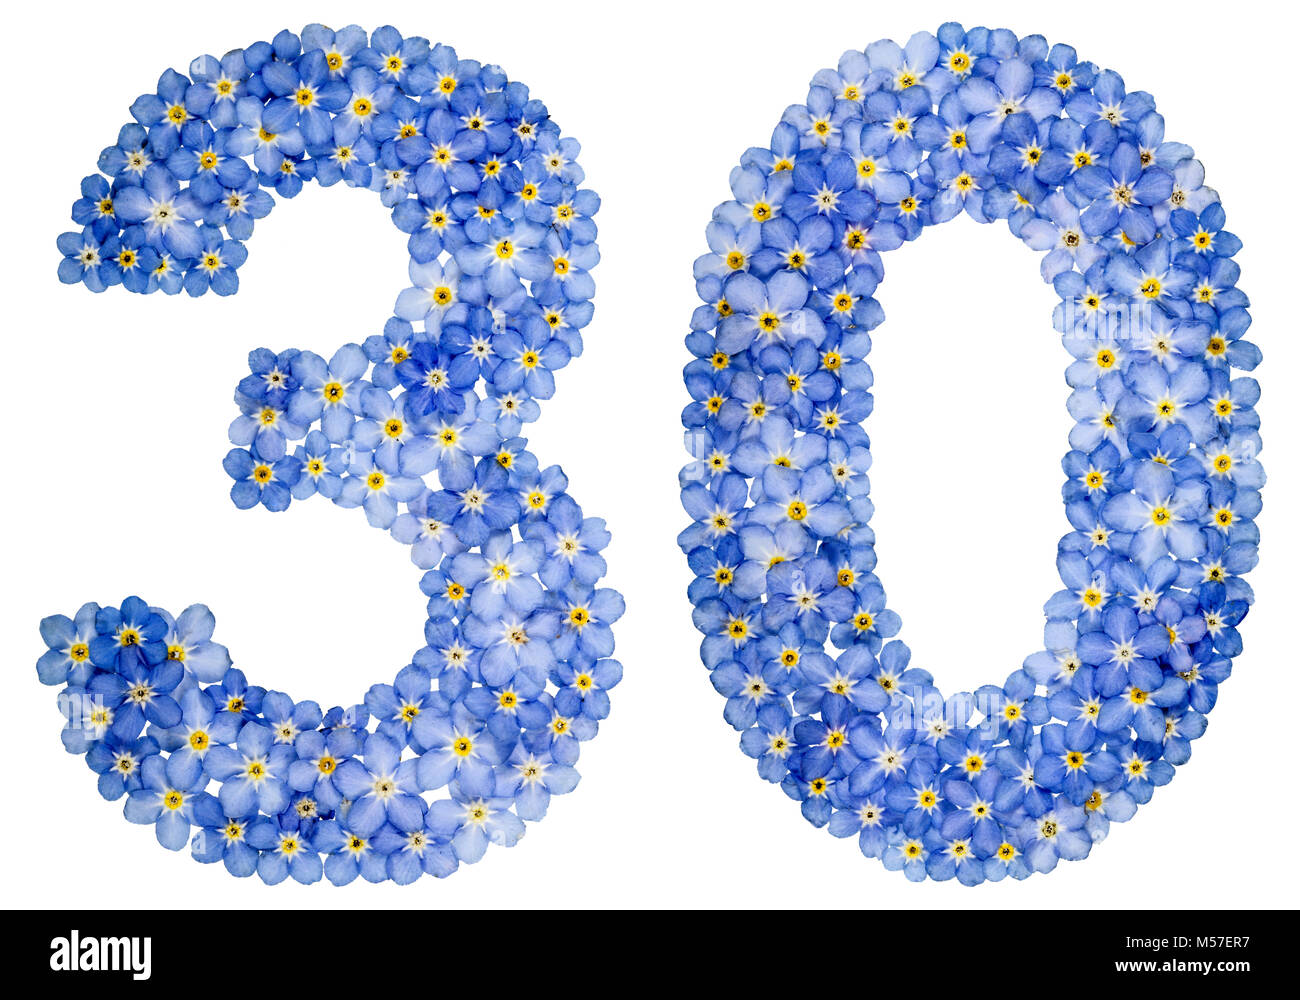 Arabic numeral 30, thirty, from blue forget-me-not flowers Stock Photo